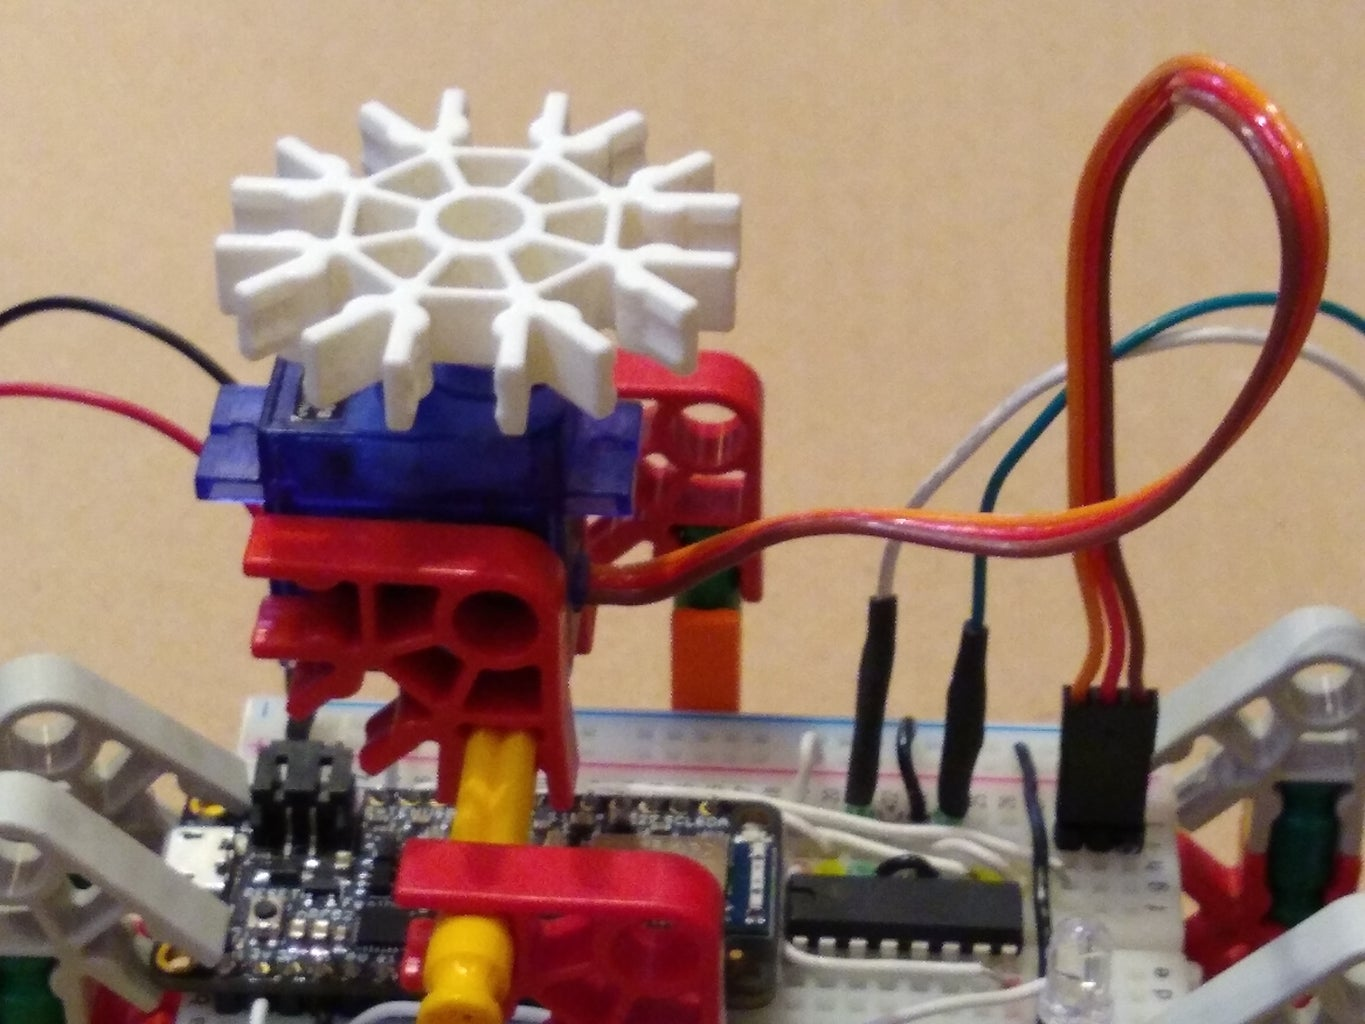 Attach and Install the Servo Motor